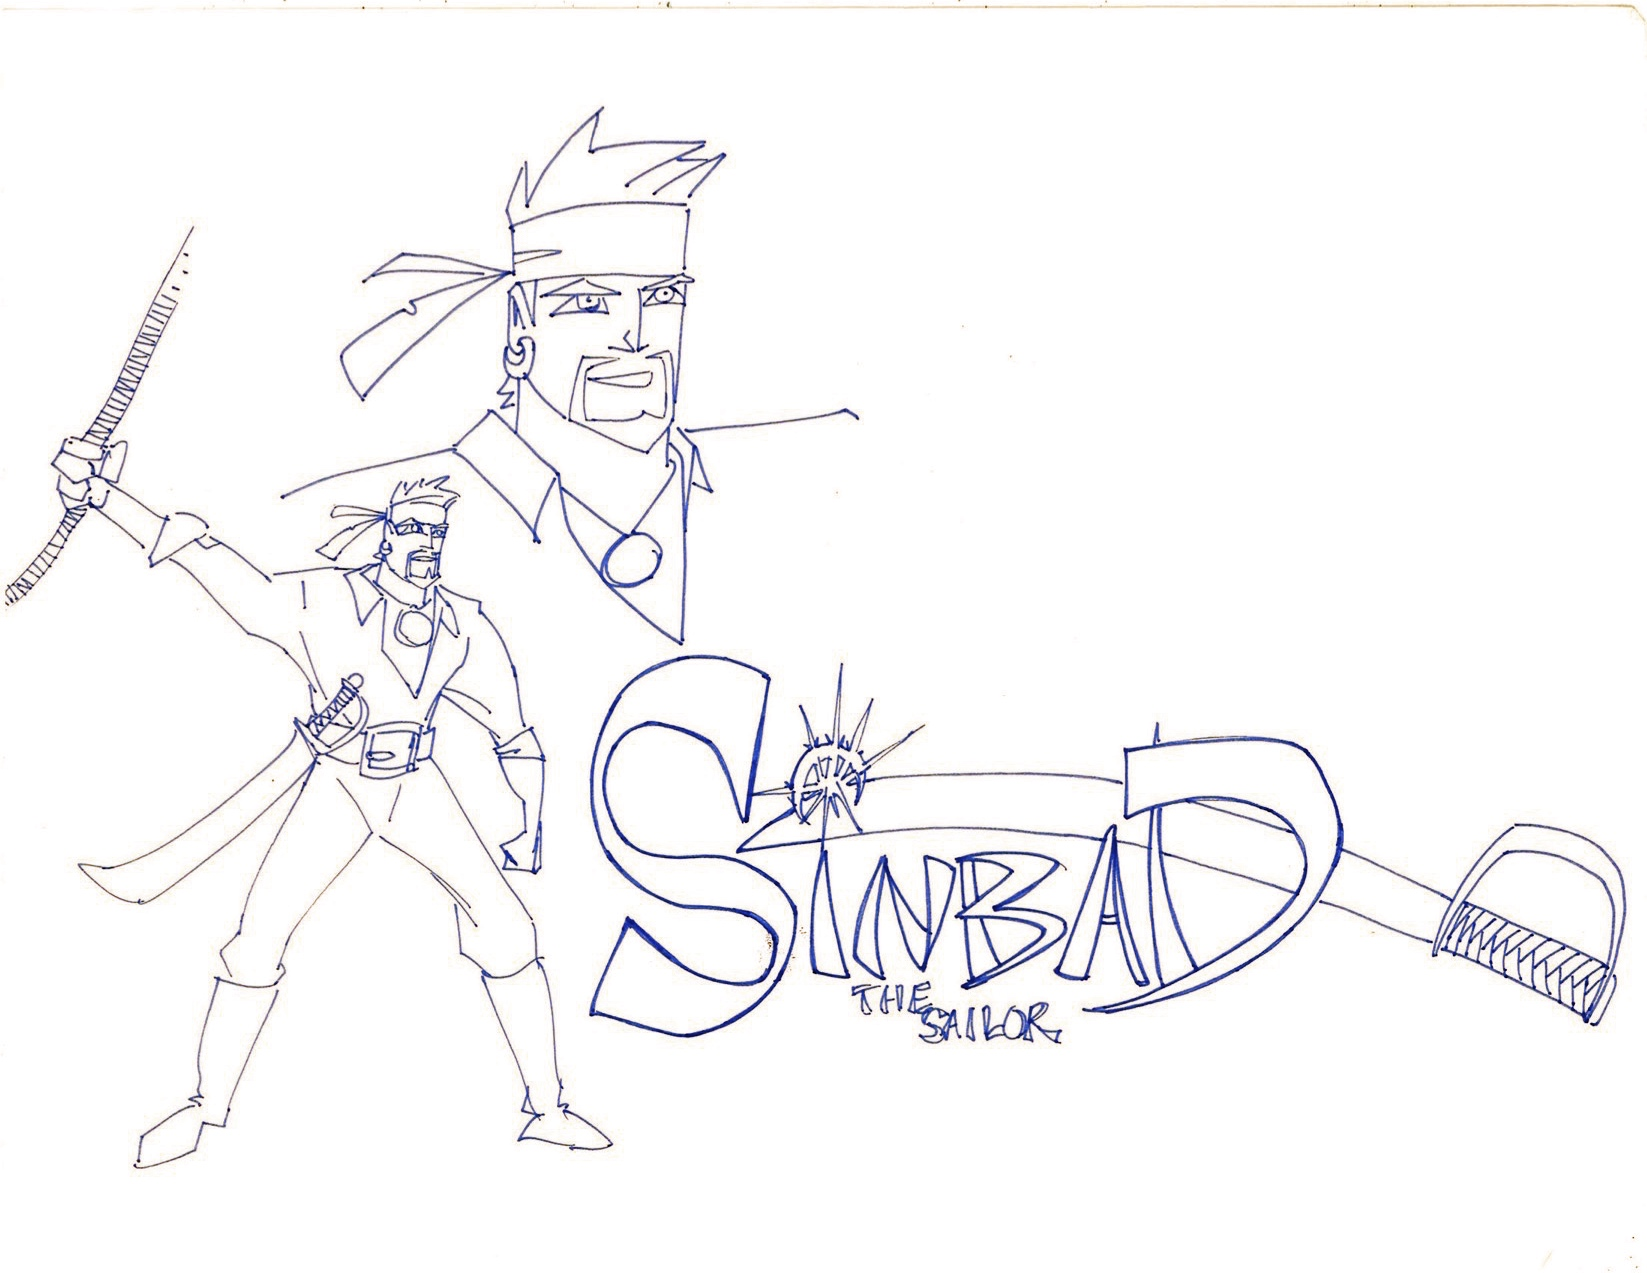 Disney animation inspired Sinbad, circa 1994